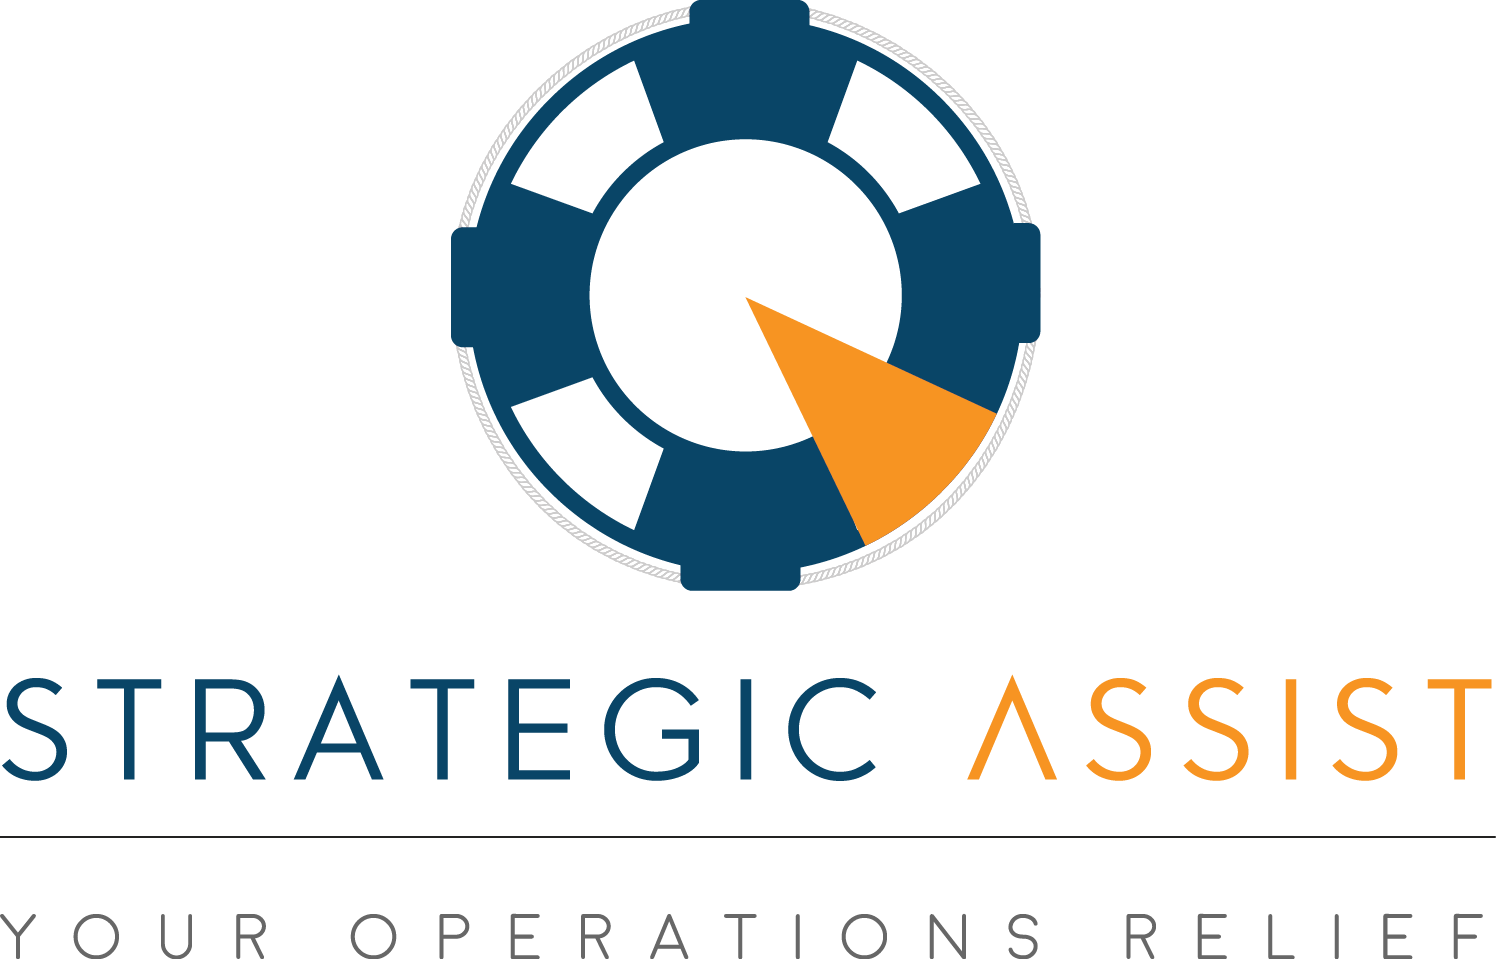 Strategic Assist LLC